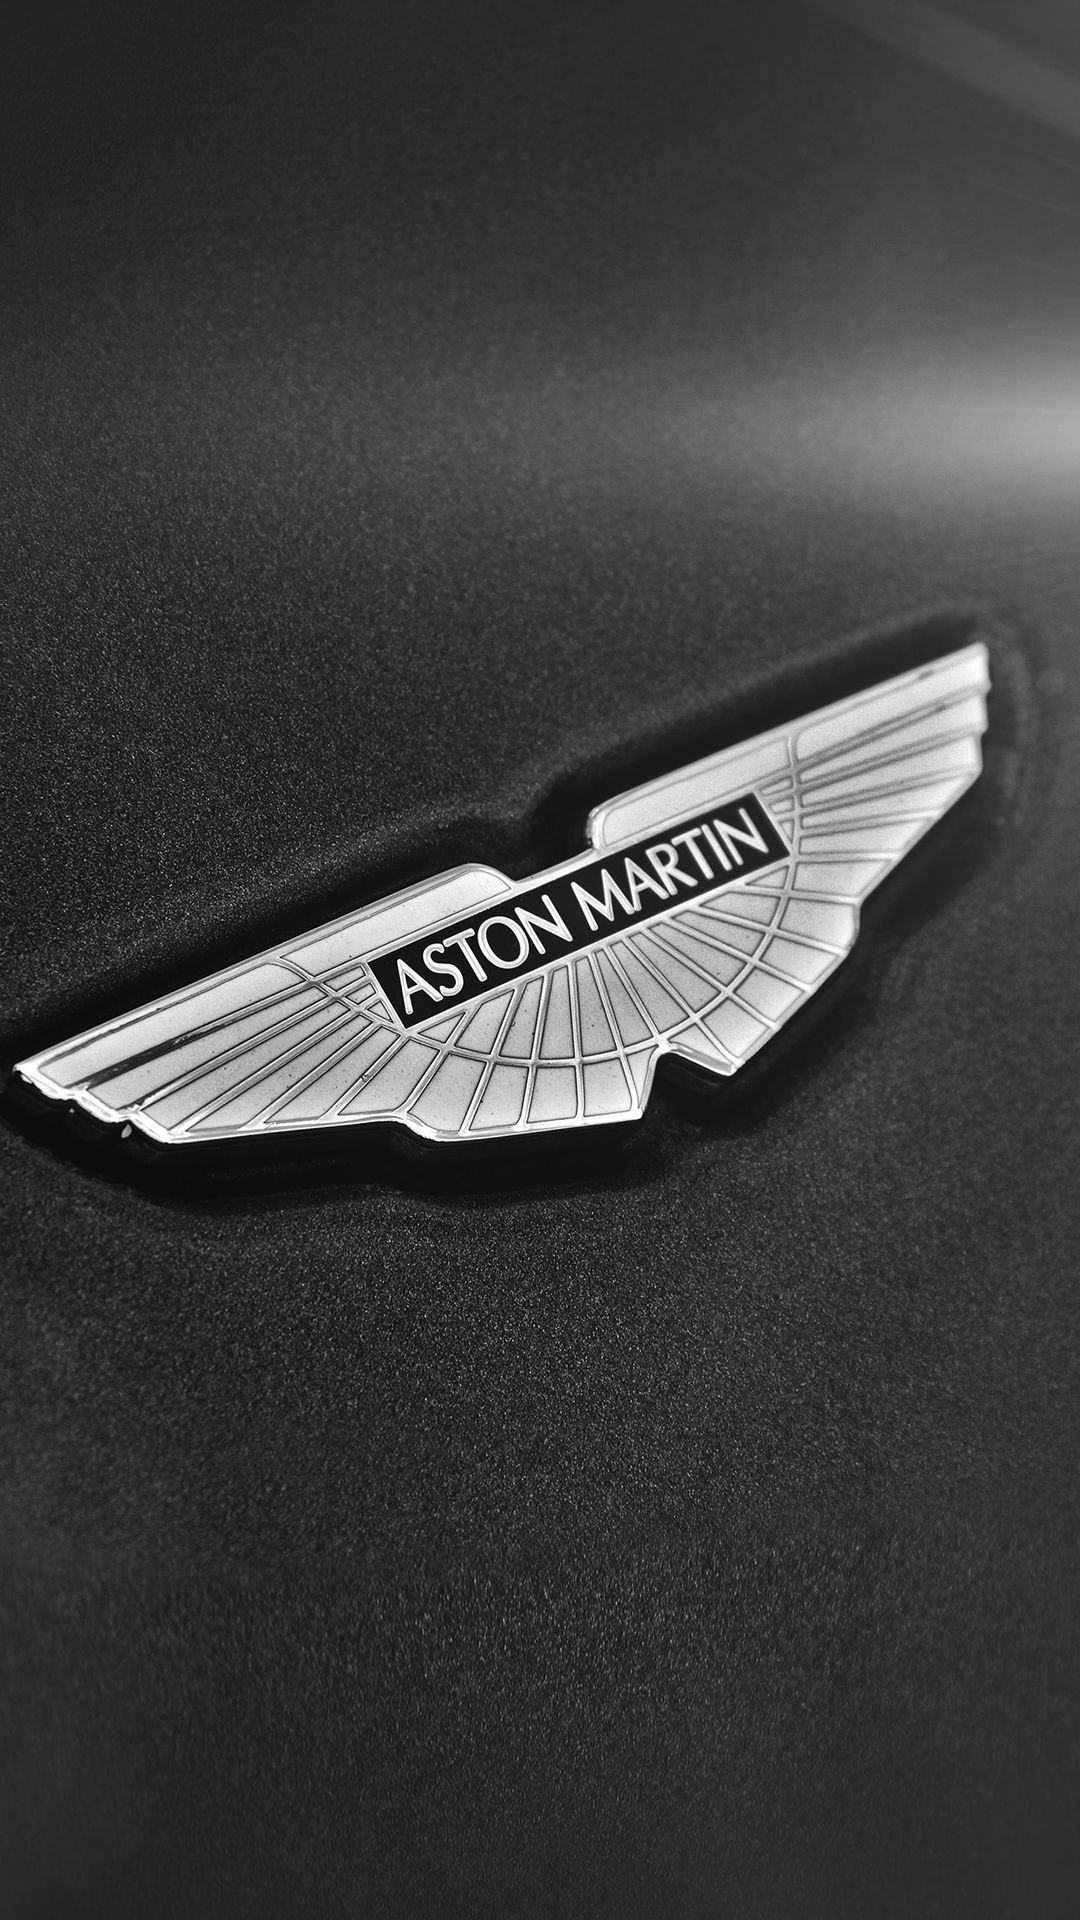 Pin by carseekr on Aston Martin Aston martin, Harley